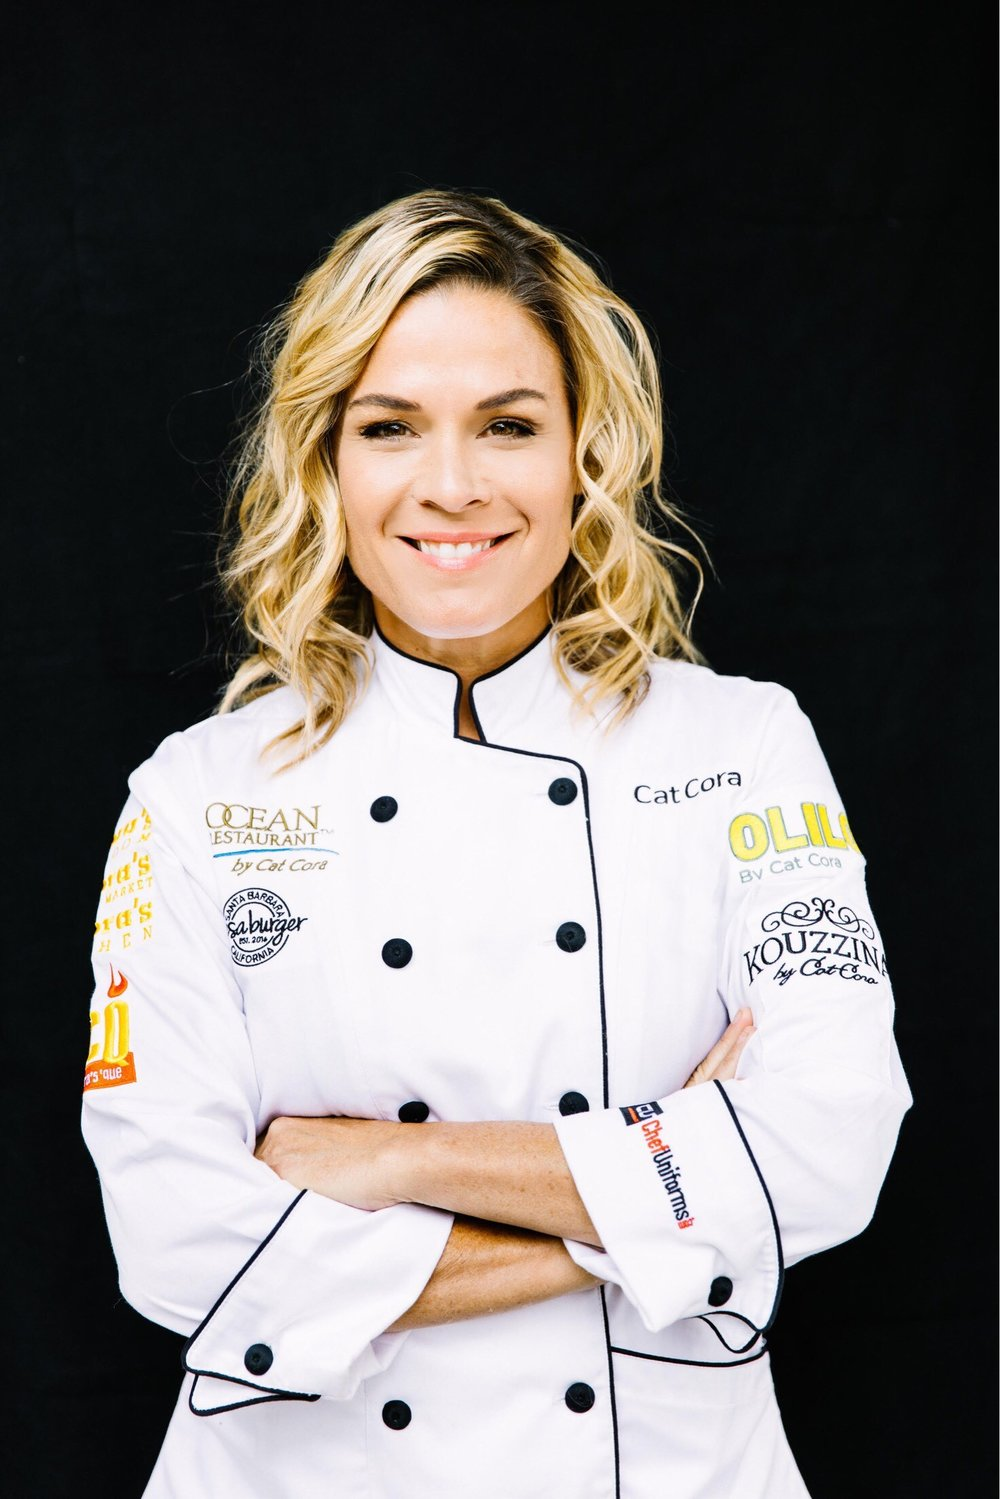 Cat Cora_Chef's Coat NEW.jpg